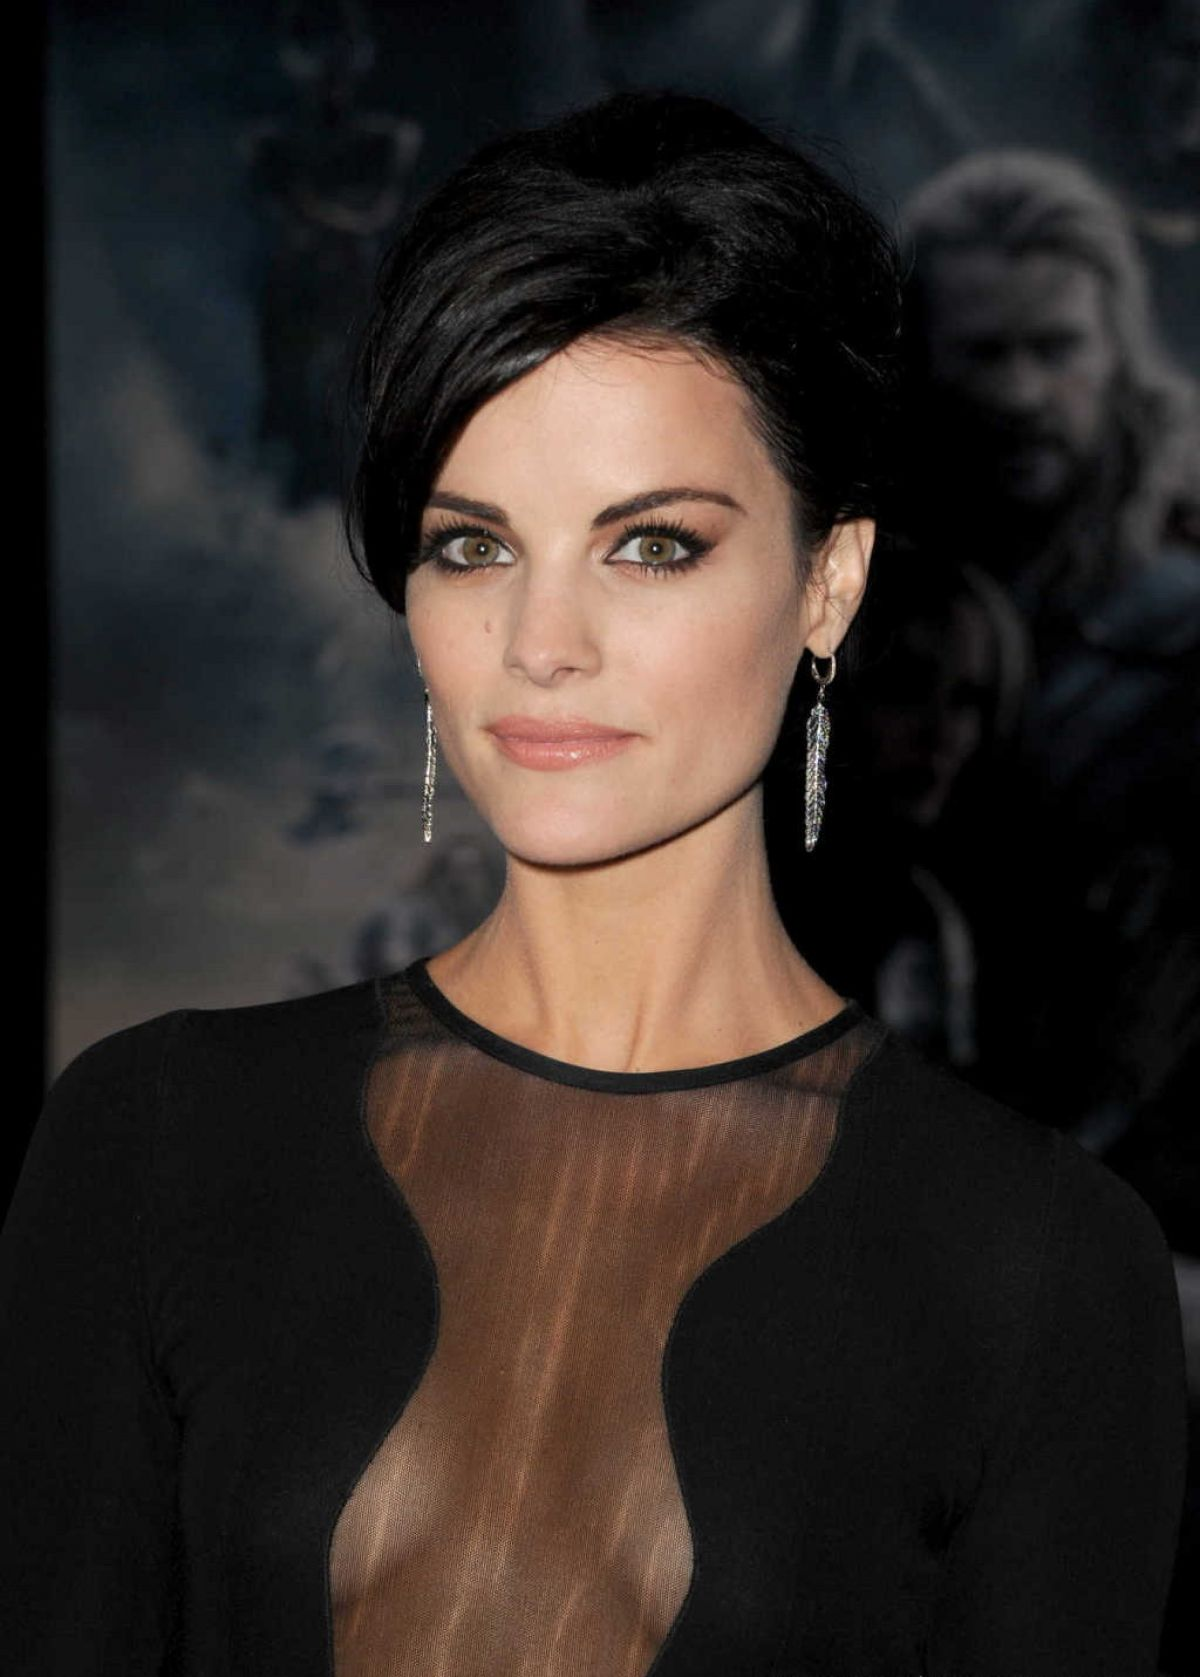 jaimie-alexander-at-thor-the-dark-world-premiere-in-hollywood_2.jpg - 141.20 KB